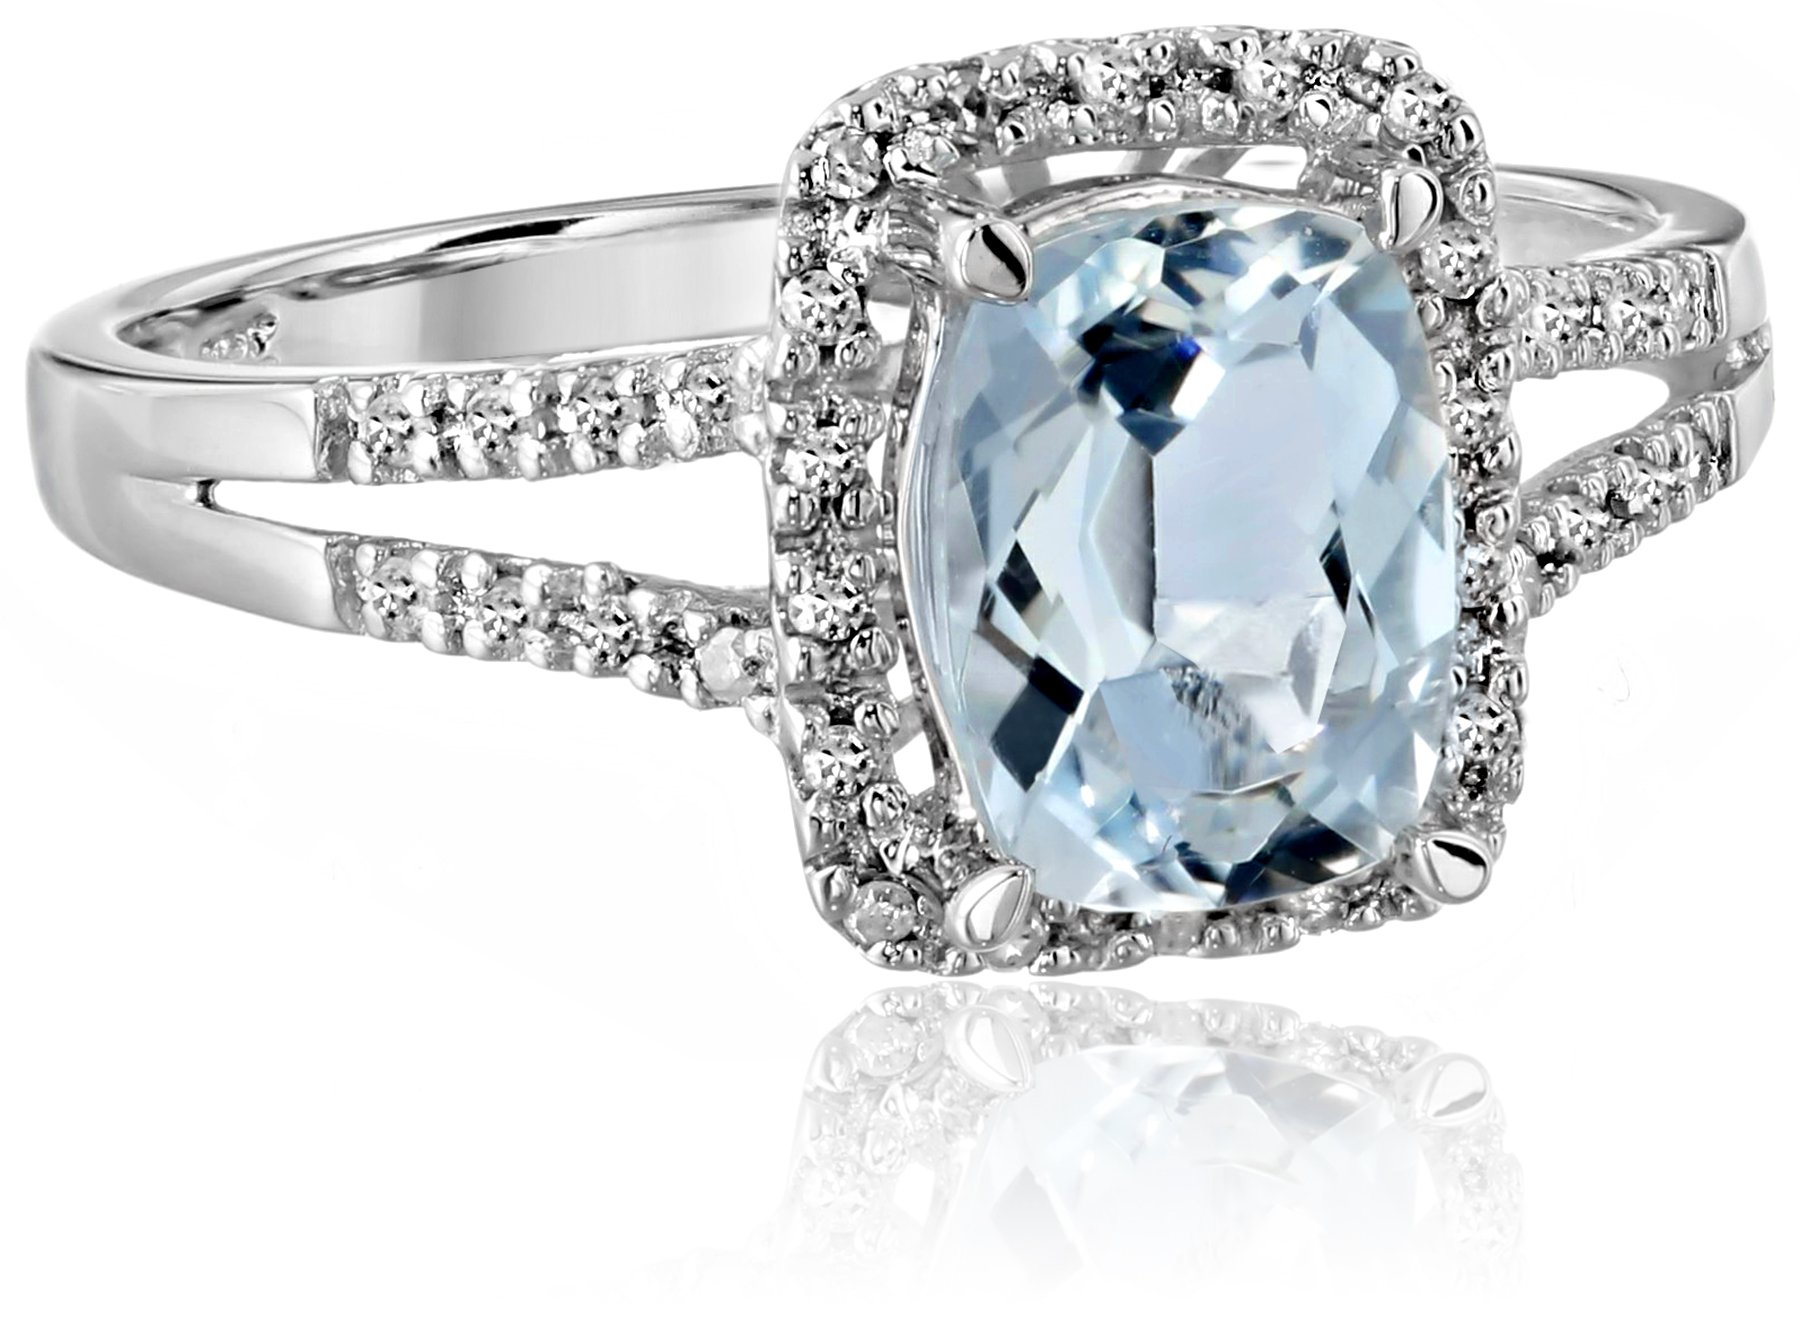 Sterling Silver Classic Aquamarine Diamond Ring (1/10 cttw, I-J Color, I2-I3 Clarity), Size 7